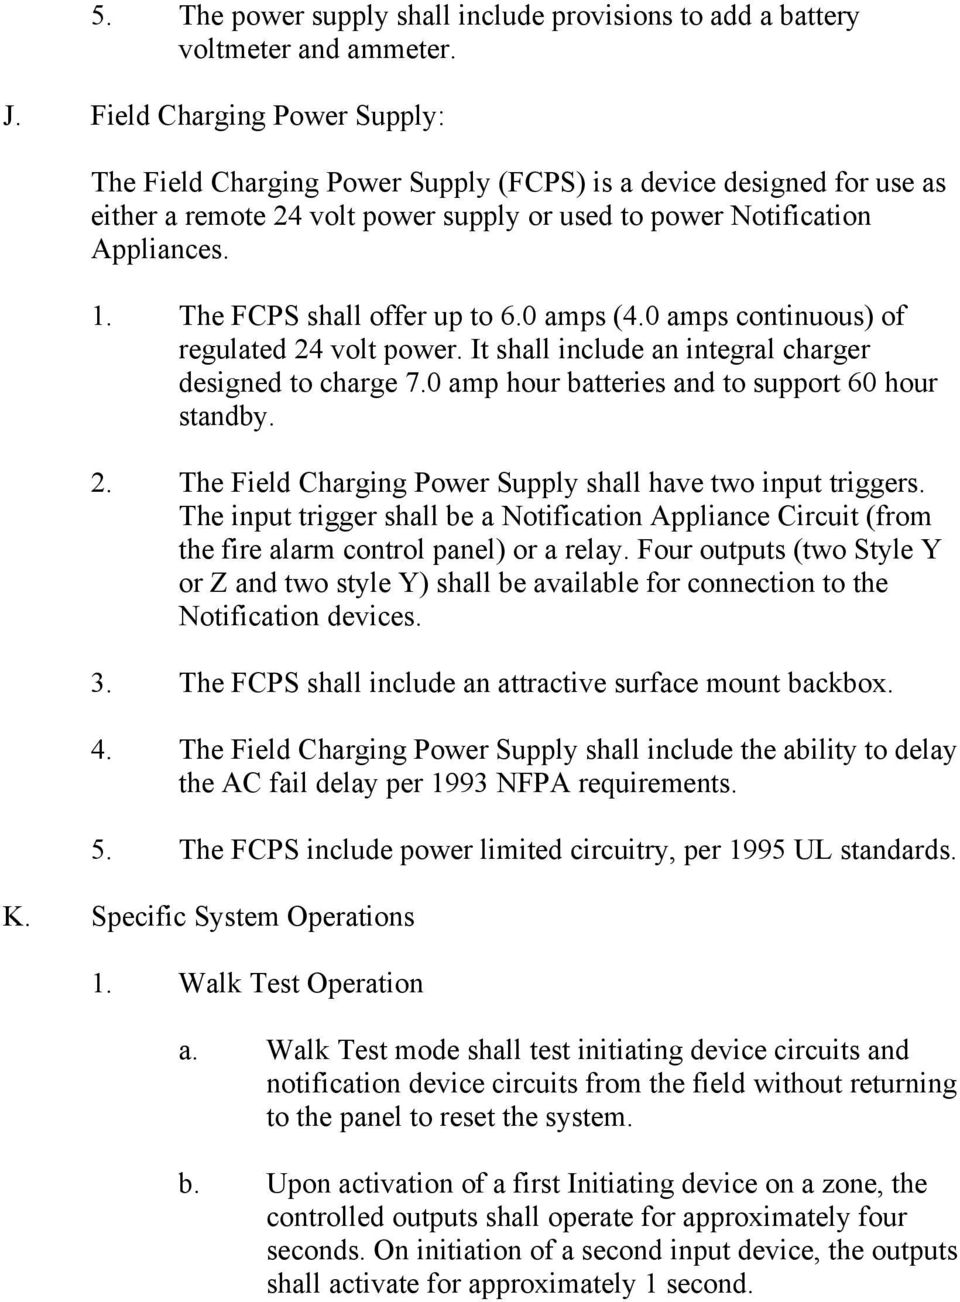 The FCPS shall offer up to 6.0 amps (4.0 amps continuous) of regulated 24 volt power. It shall include an integral charger designed to charge 7.0 amp hour batteries and to support 60 hour standby. 2. The Field Charging Power Supply shall have two input triggers.